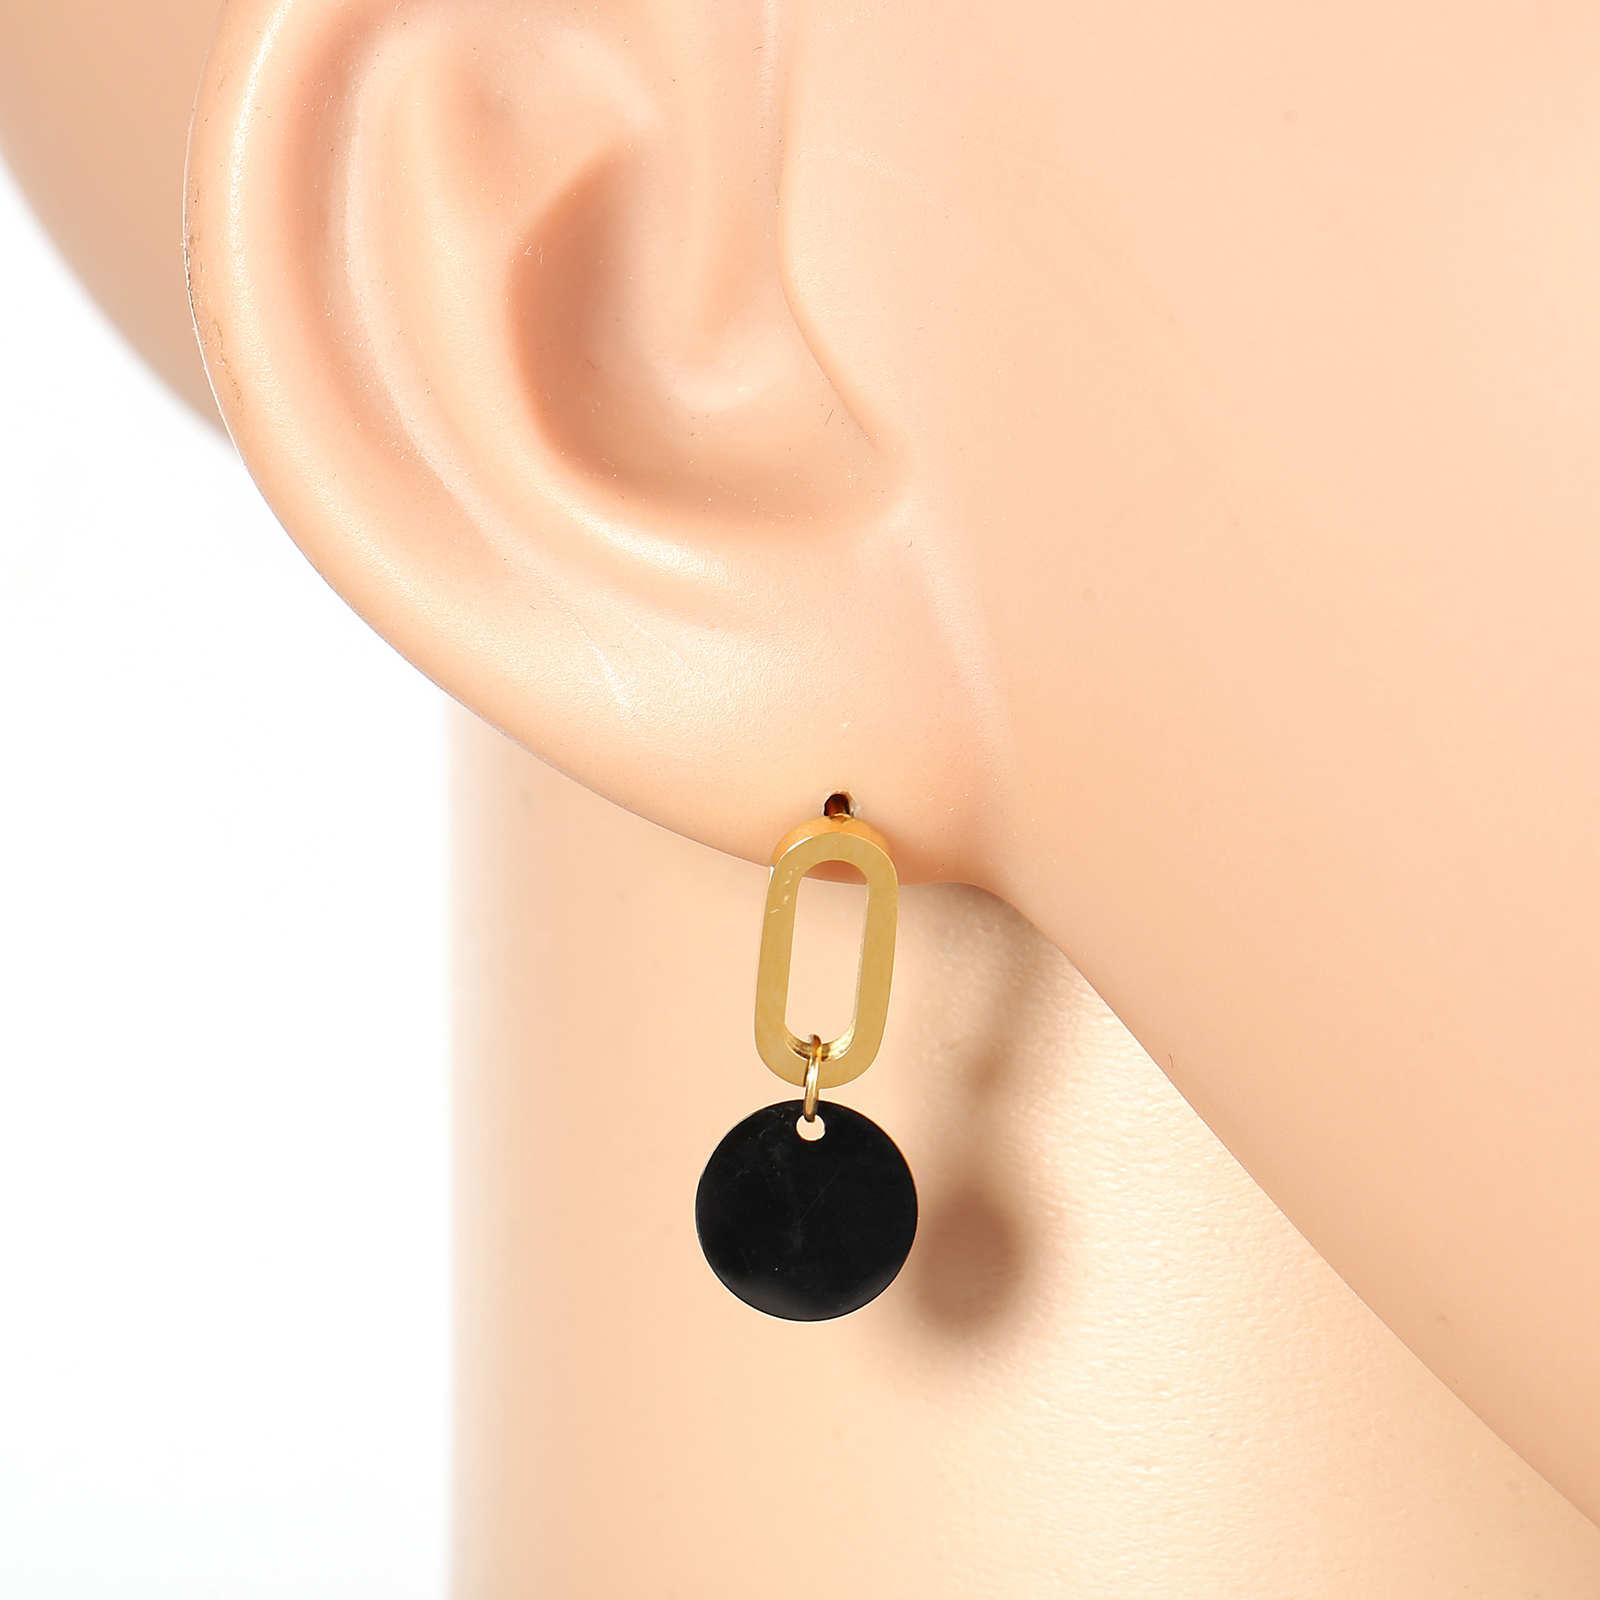 Primary image for Stylish Gold Tone Designer Drop Earrings with Jet Black Gun-Metal Circle